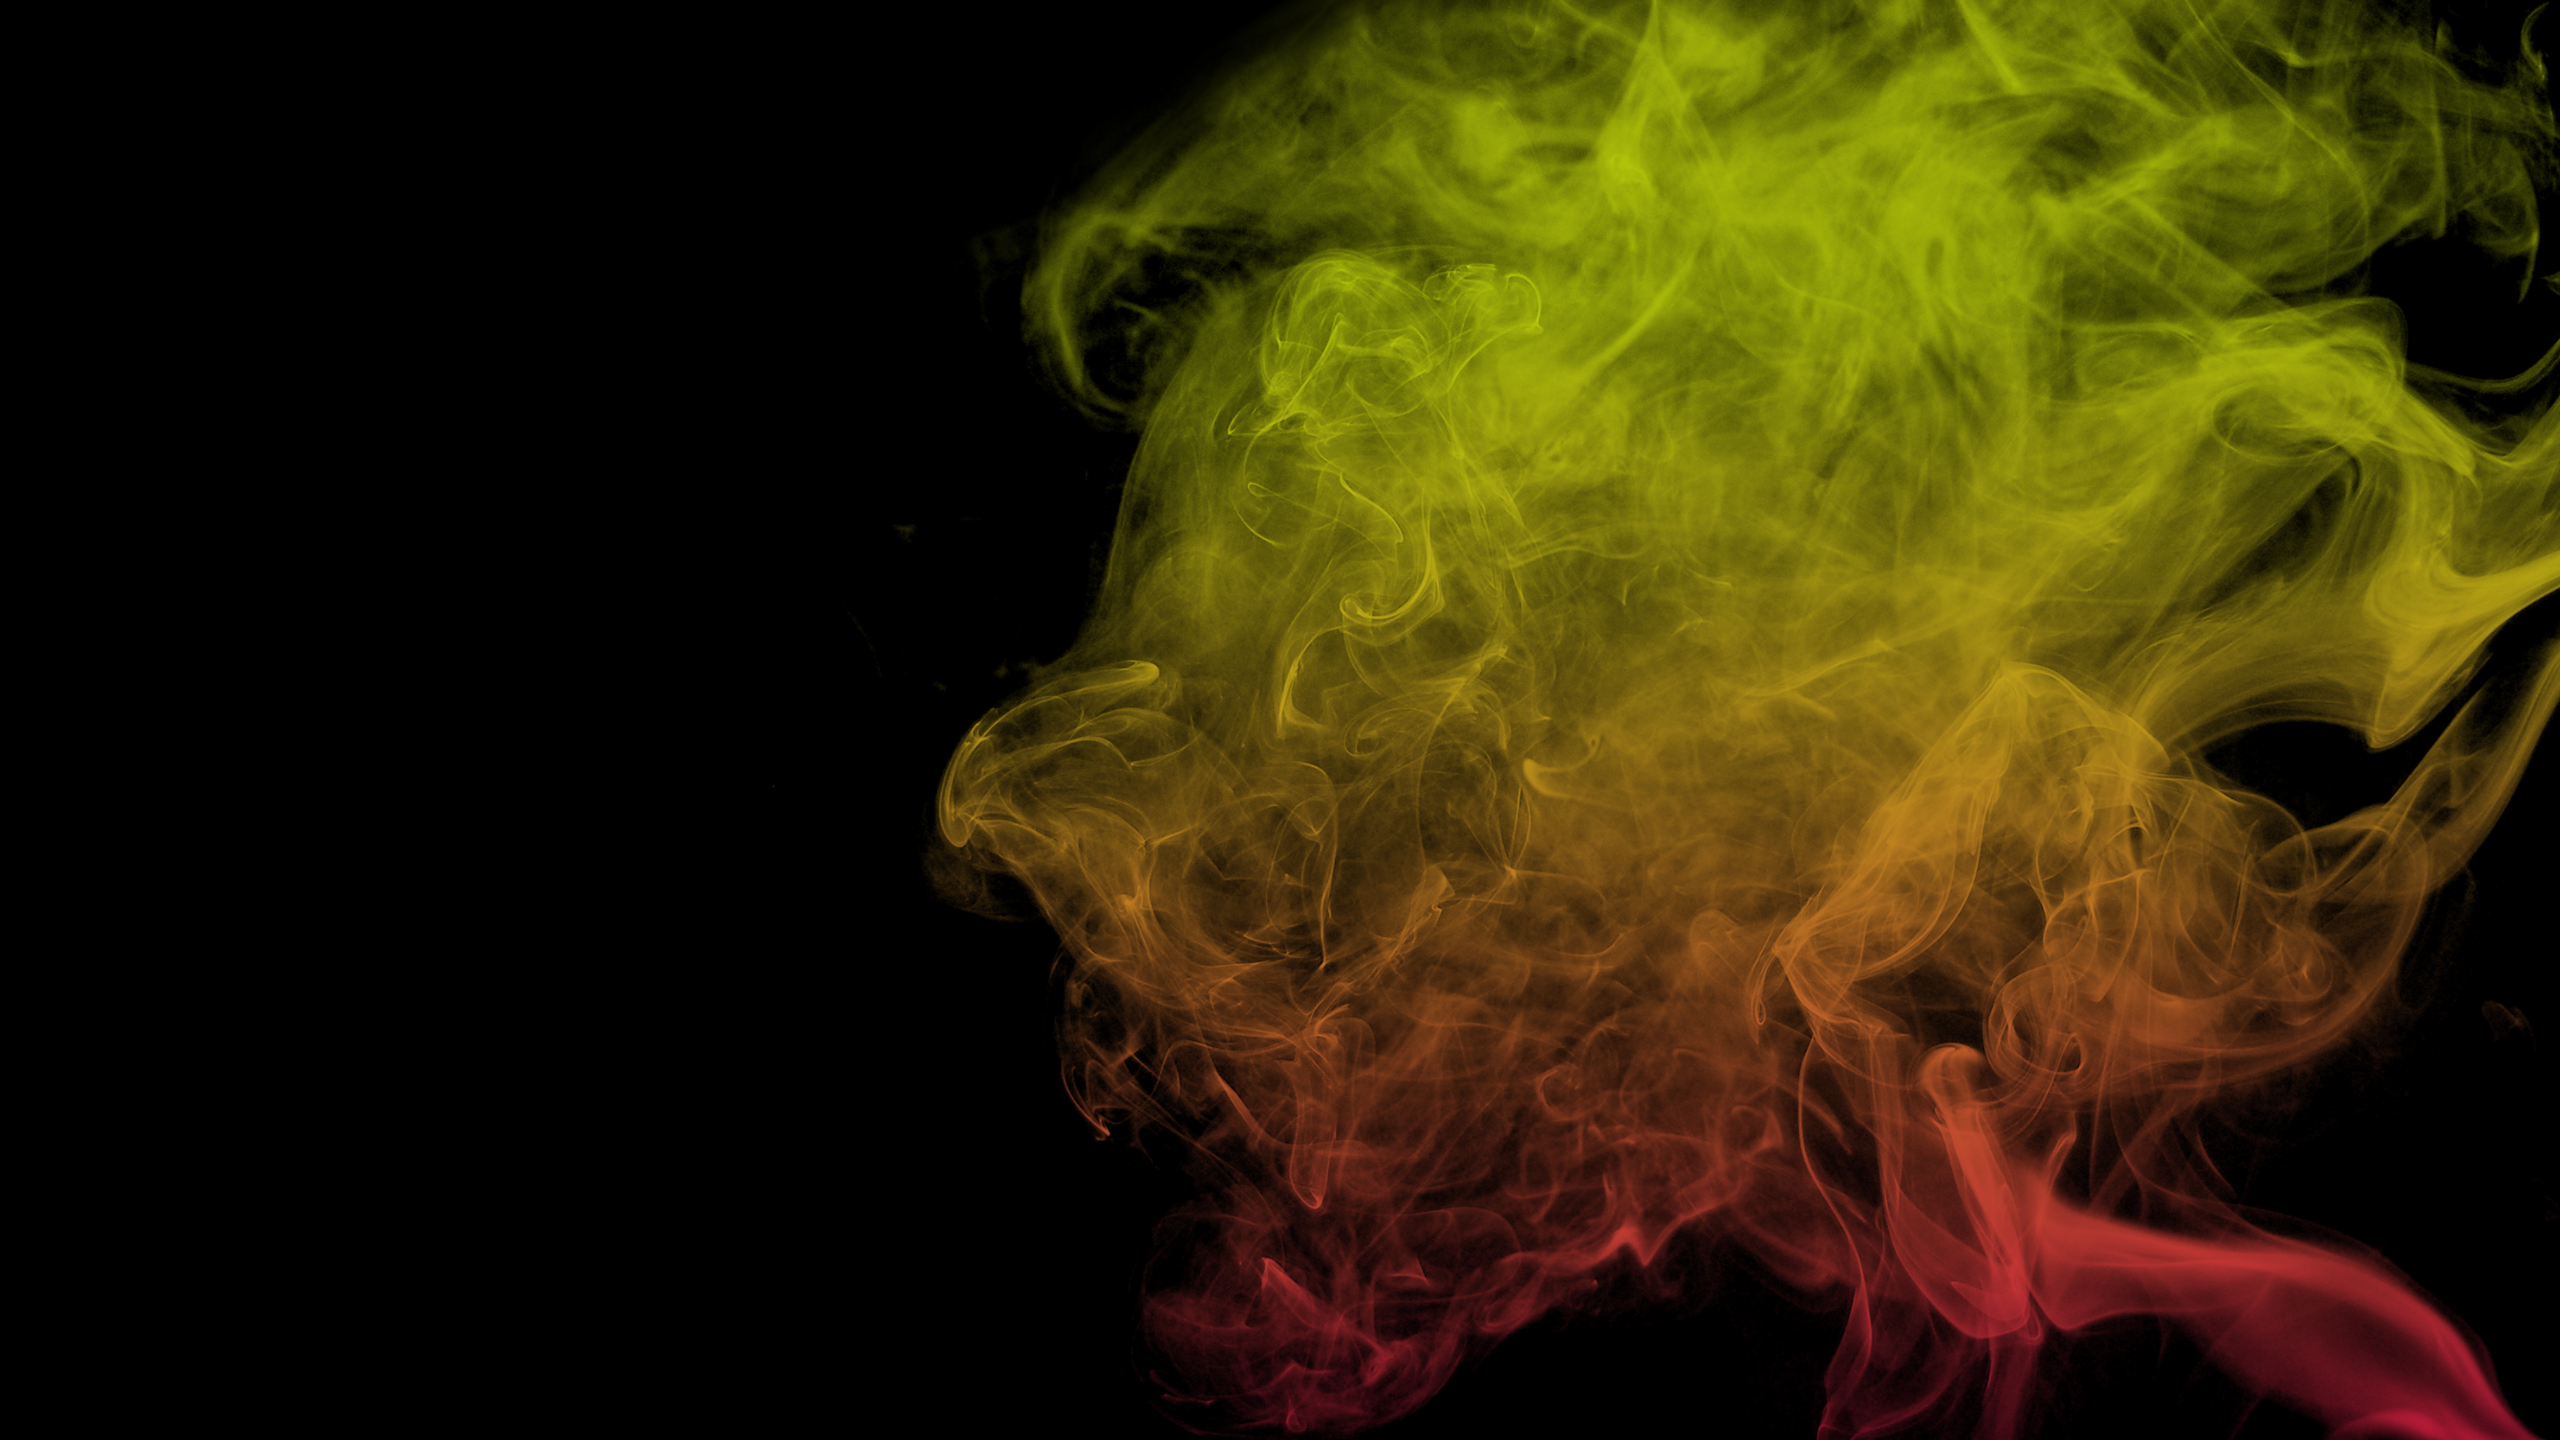 download rasta smoke wallpaper ImageBankbiz 2560x1440